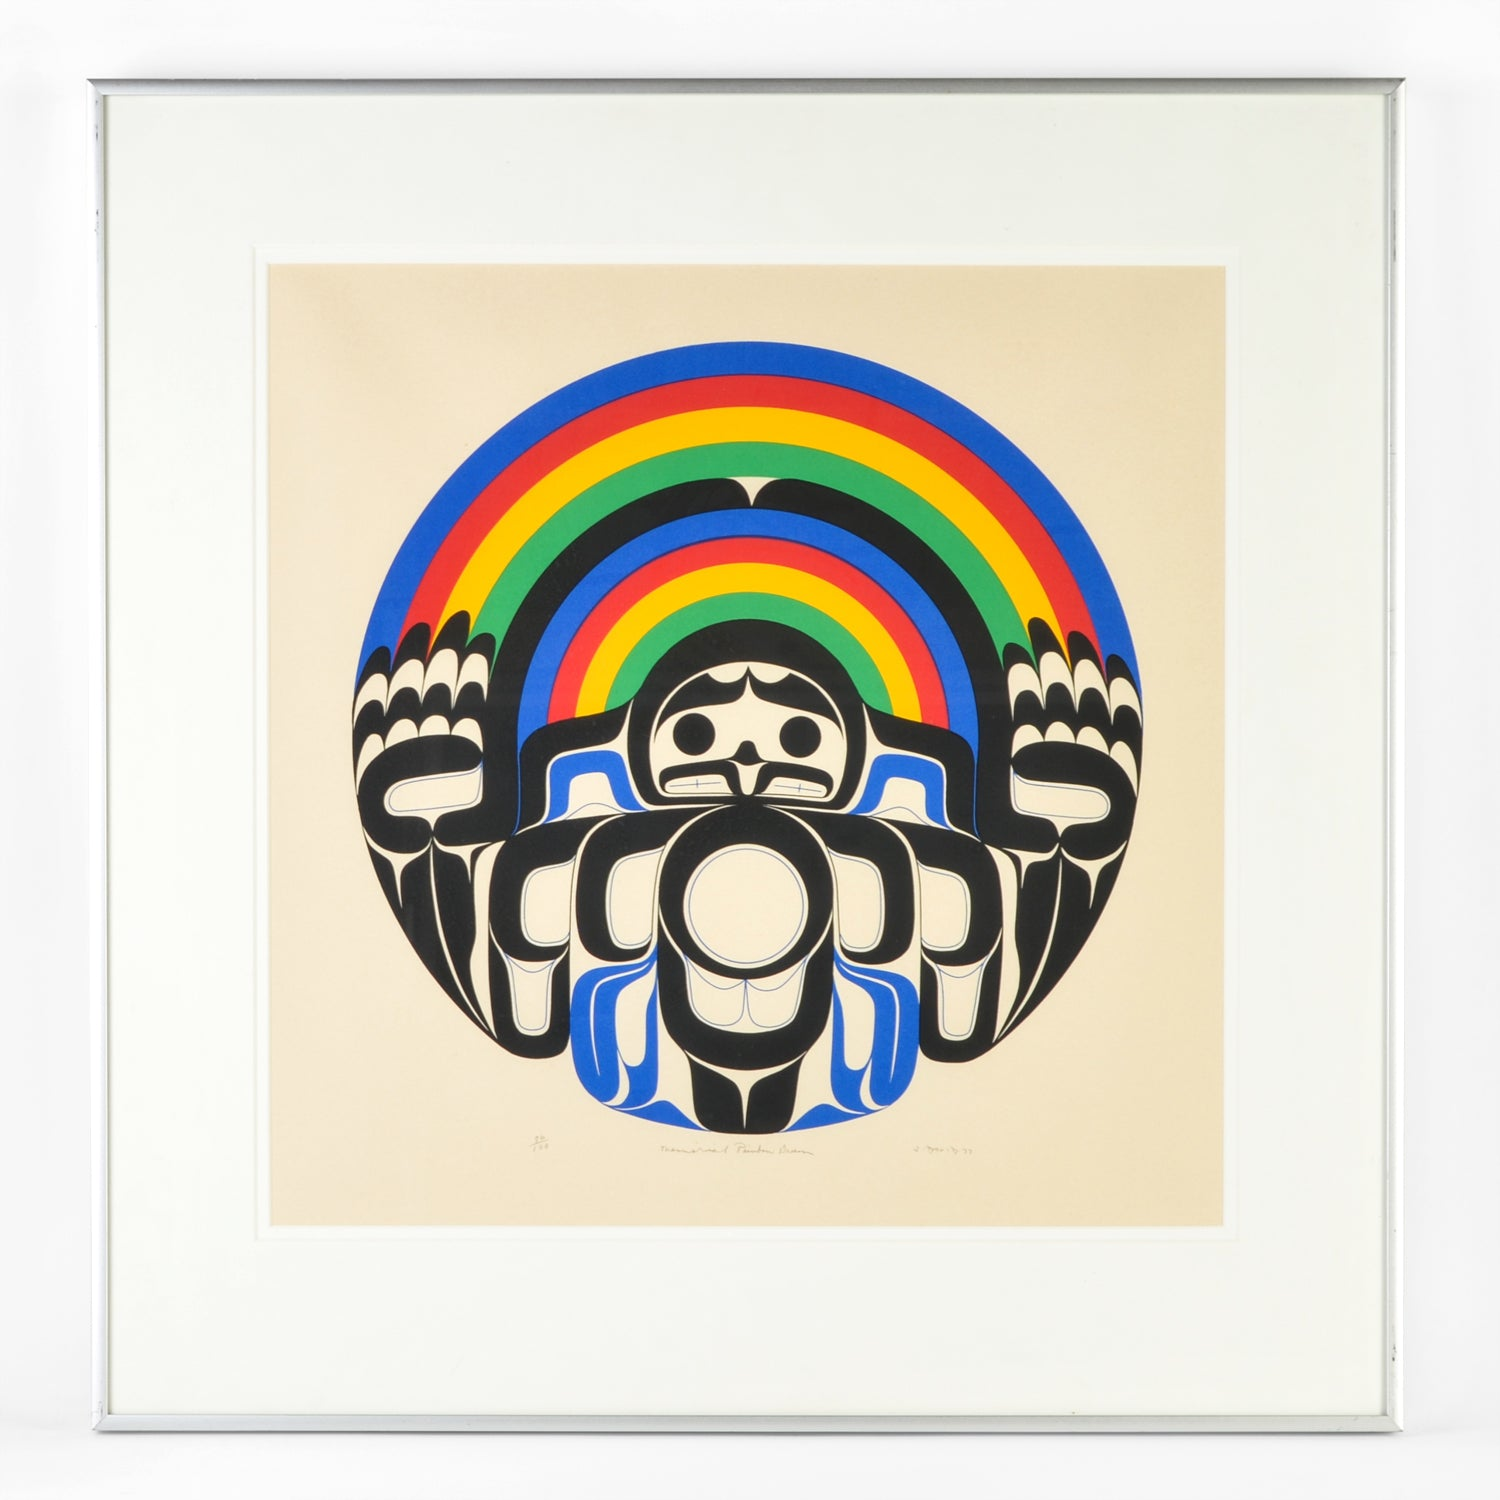 Memorial Rainbow Drum by Joe David